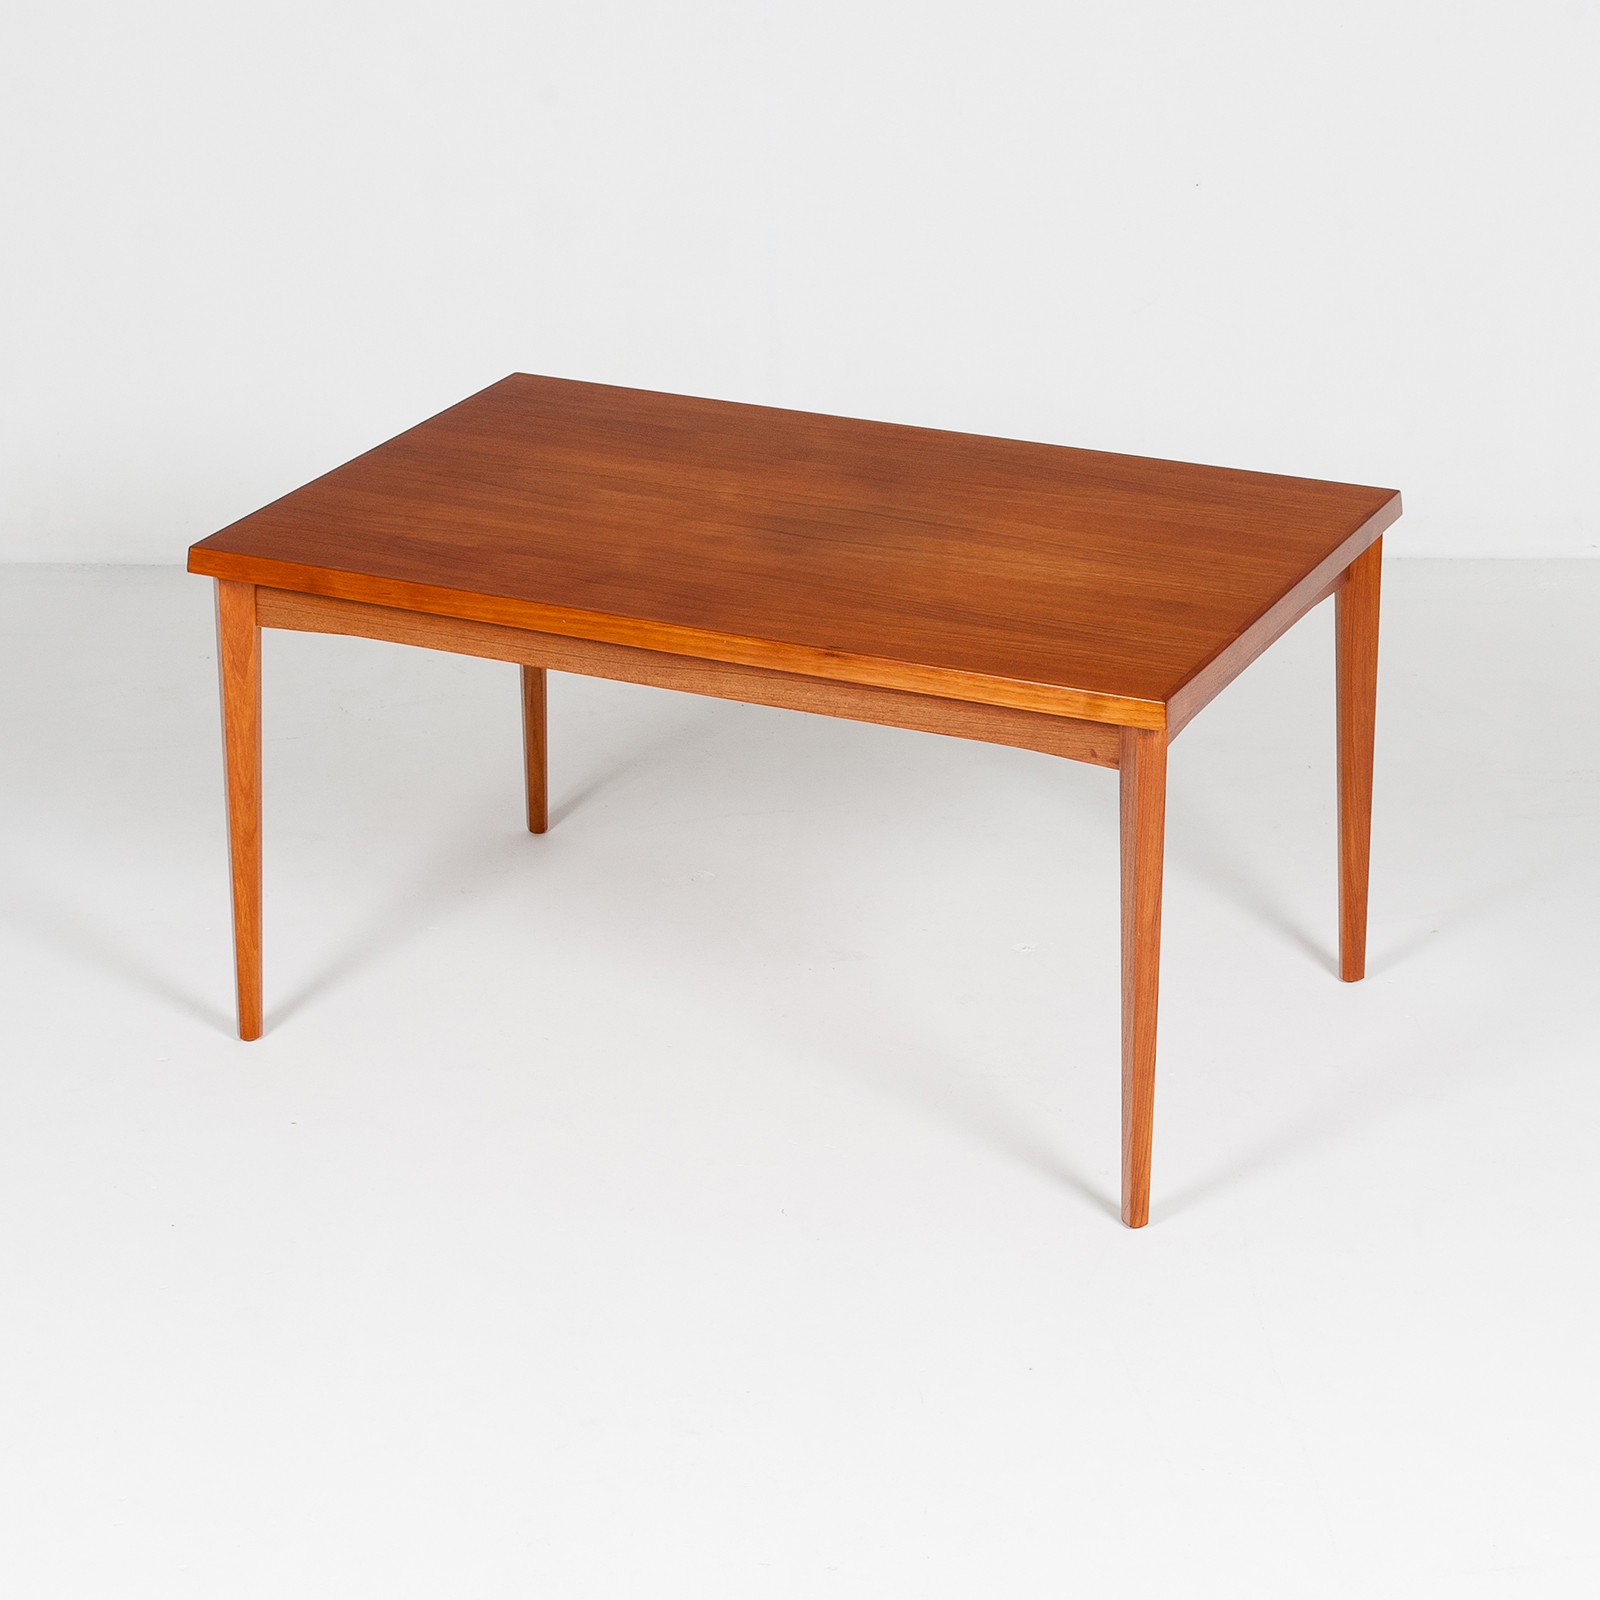 Dining Table In Teak With Concealed Top, 1960s, Denmark21